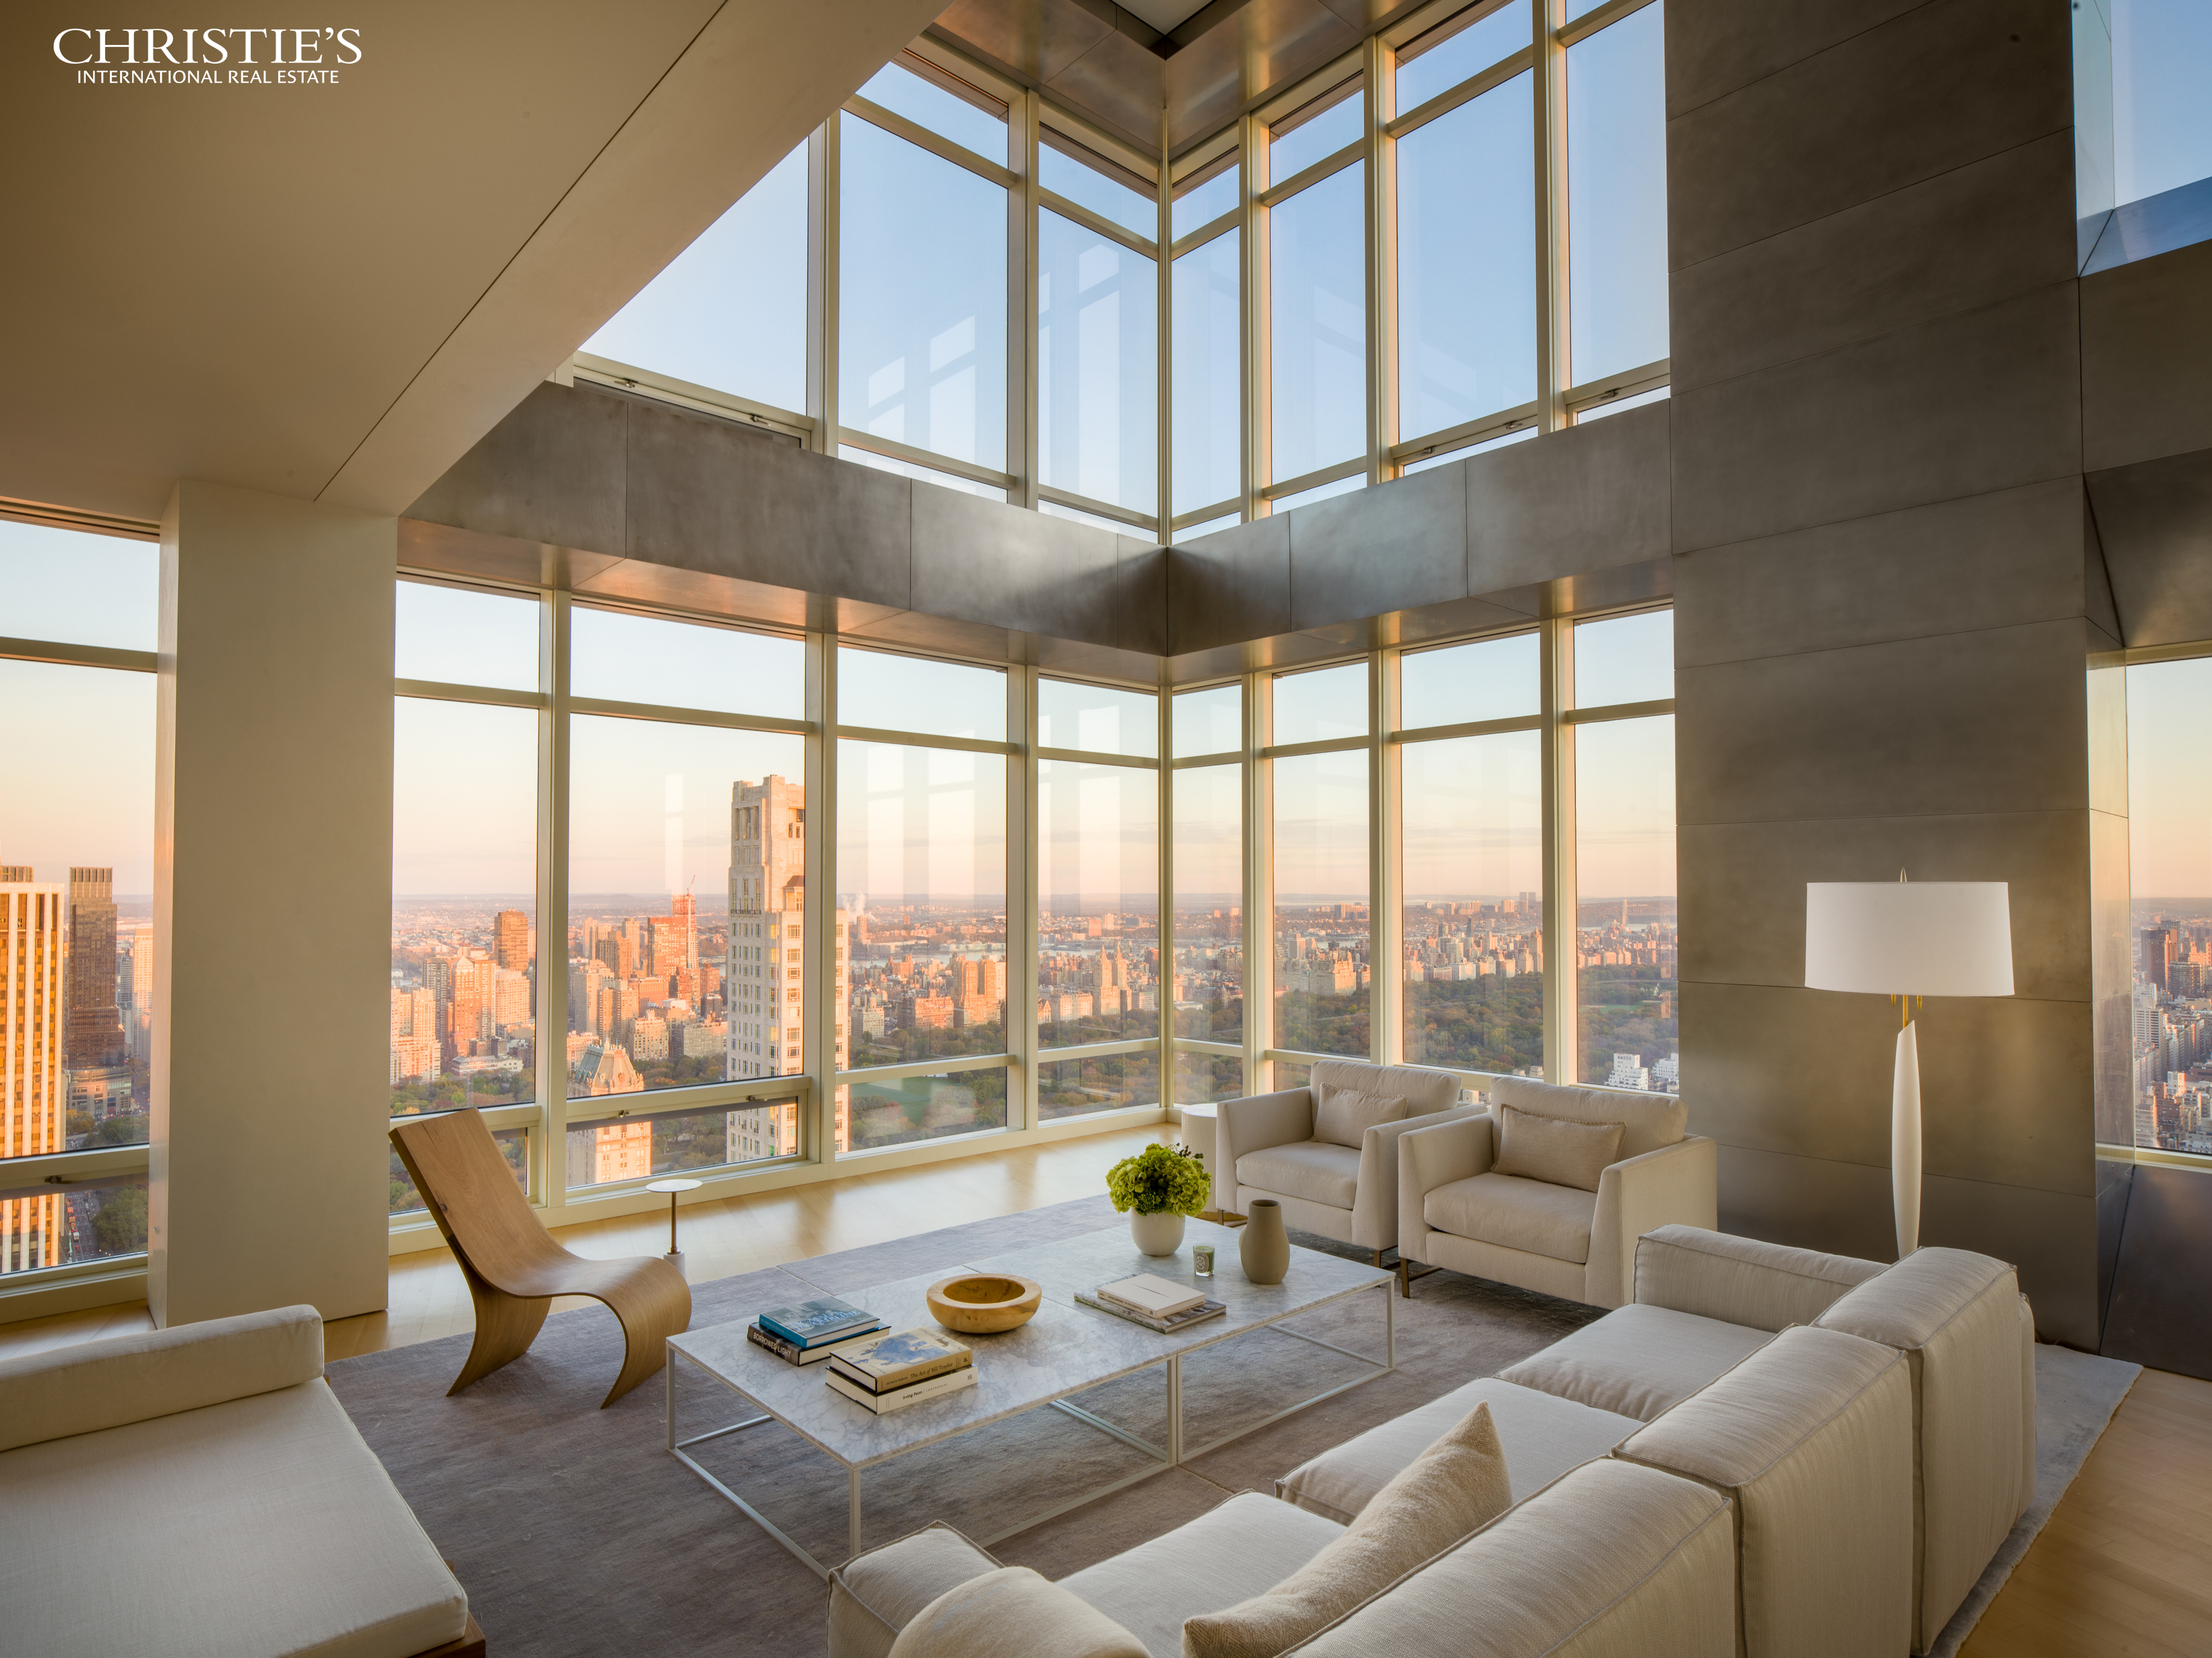 Best PH PPSF Citywide.  Lowest PH Price with Central Park Views.  Best PH Value Citywide.Breathtaking helicopter views of the Manhattan skyline, Central Park, the East and Hudson Rivers and beyond define this sky-high penthouse duplex. With 9,000 square feet, five bedrooms, and six-and-a-half bathrooms by architectural legend Charles Gwathmey, this palatial home features an awe-inspiring, 24-foot double-height ceiling in the living room, a chef's eat-in-kitchen with state-of-the-art stainless steel appliances, separate floors for entertaining and living, and a nearly 2,000-square-foot master suite with dual closets and separate bathrooms. Double home offices, a media room, two living rooms, and separate staff quarters and storage complete the property. Soaring over 700 feet above midtown, PH51/52W offers views for miles, taking in landmarks and scenery rare in the current market and at this price per square foot. Through 400 linear feet of 12-foot-high windows showcasing northern, western, and southern exposures, open vistas span from the East River to the Hudson and from the Freedom Tower to the George Washington Bridge. One Beacon Court is Midtown Manhattan's most established business address and premier luxury condominium residence, reached securely off 58th Street via private drive court. Amenities include a fitness center complete with barre exercise room and treatment room, a resident lounge and business center, a children's playroom, and catering kitchen space. Also known as the iconic Bloomberg Tower and adorned at its spire with three floors of wraparound red, white, and blue lighting, the building was developed by Vornado Realty Trust and houses at its base both Bloomberg L.P. as well as Hutong, the New York City outpost of the Hong Kong and London-acclaimed northern Chinese, high-end restaurant. Its neighborhood includes Central Park, Billionaire's Row, Fifth Avenue and Madison Avenue shopping districts, Midtown business centers, and some of the finest an